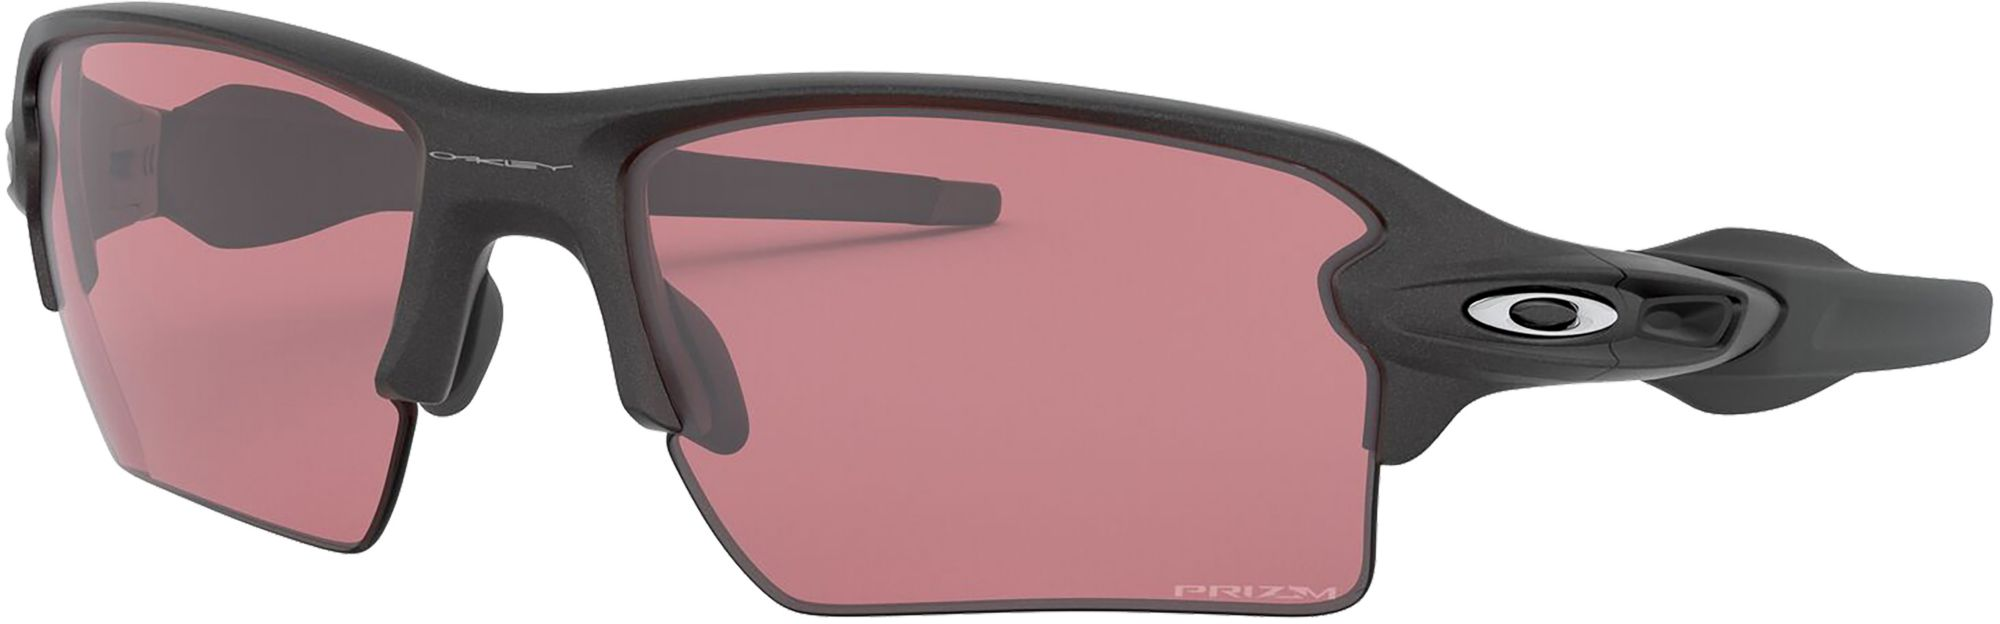 Best Sunglasses in Golf - Oakley Flak 2.0 Prizm Golf